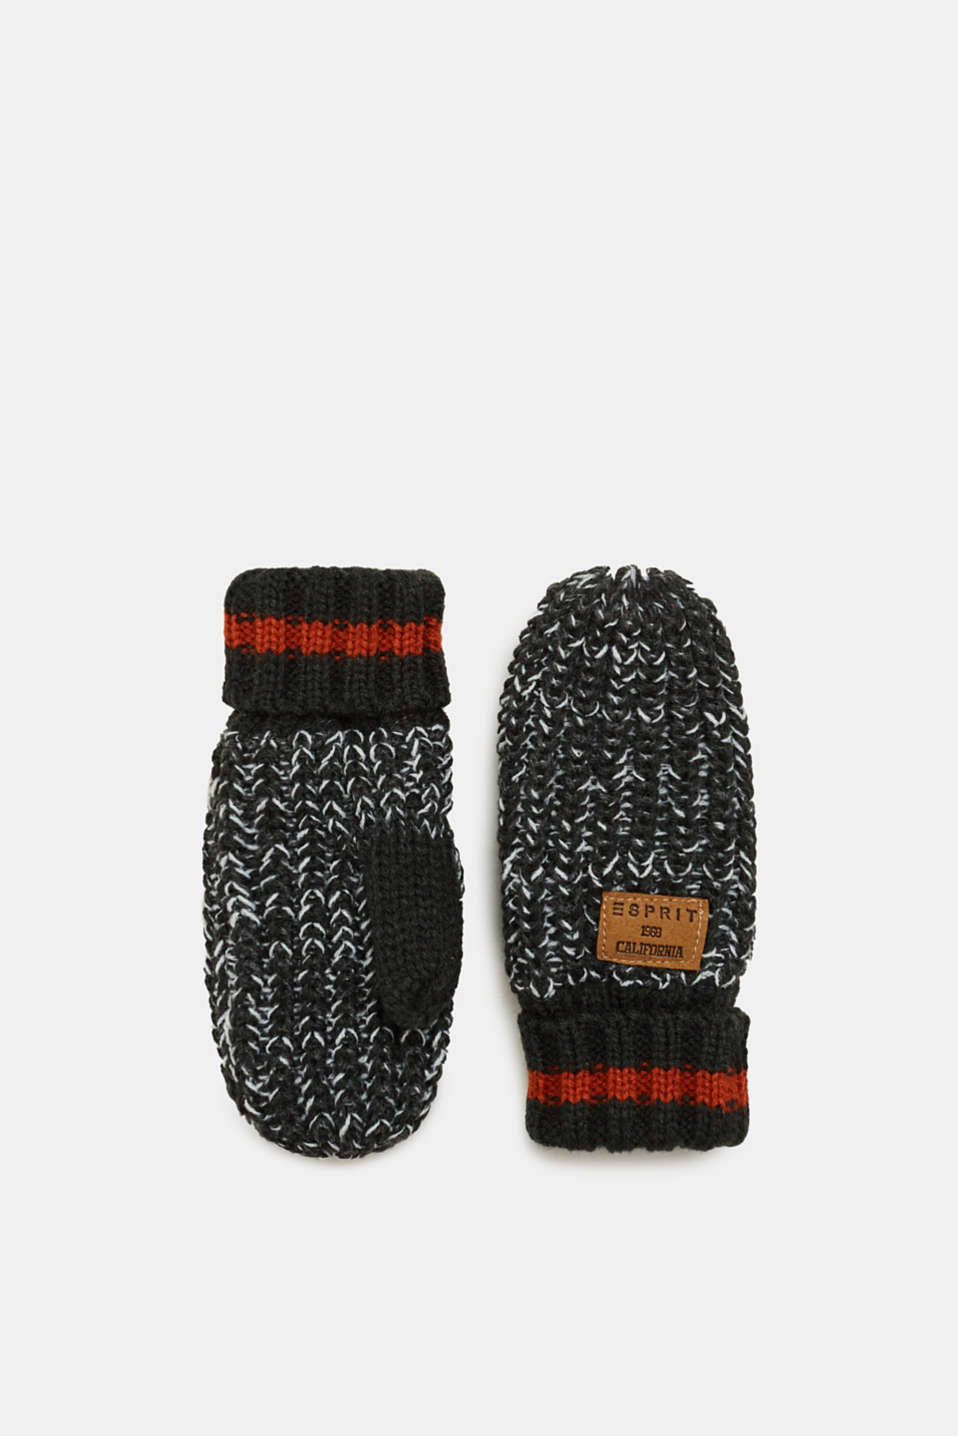 Esprit - Knit mittens with fleece lining